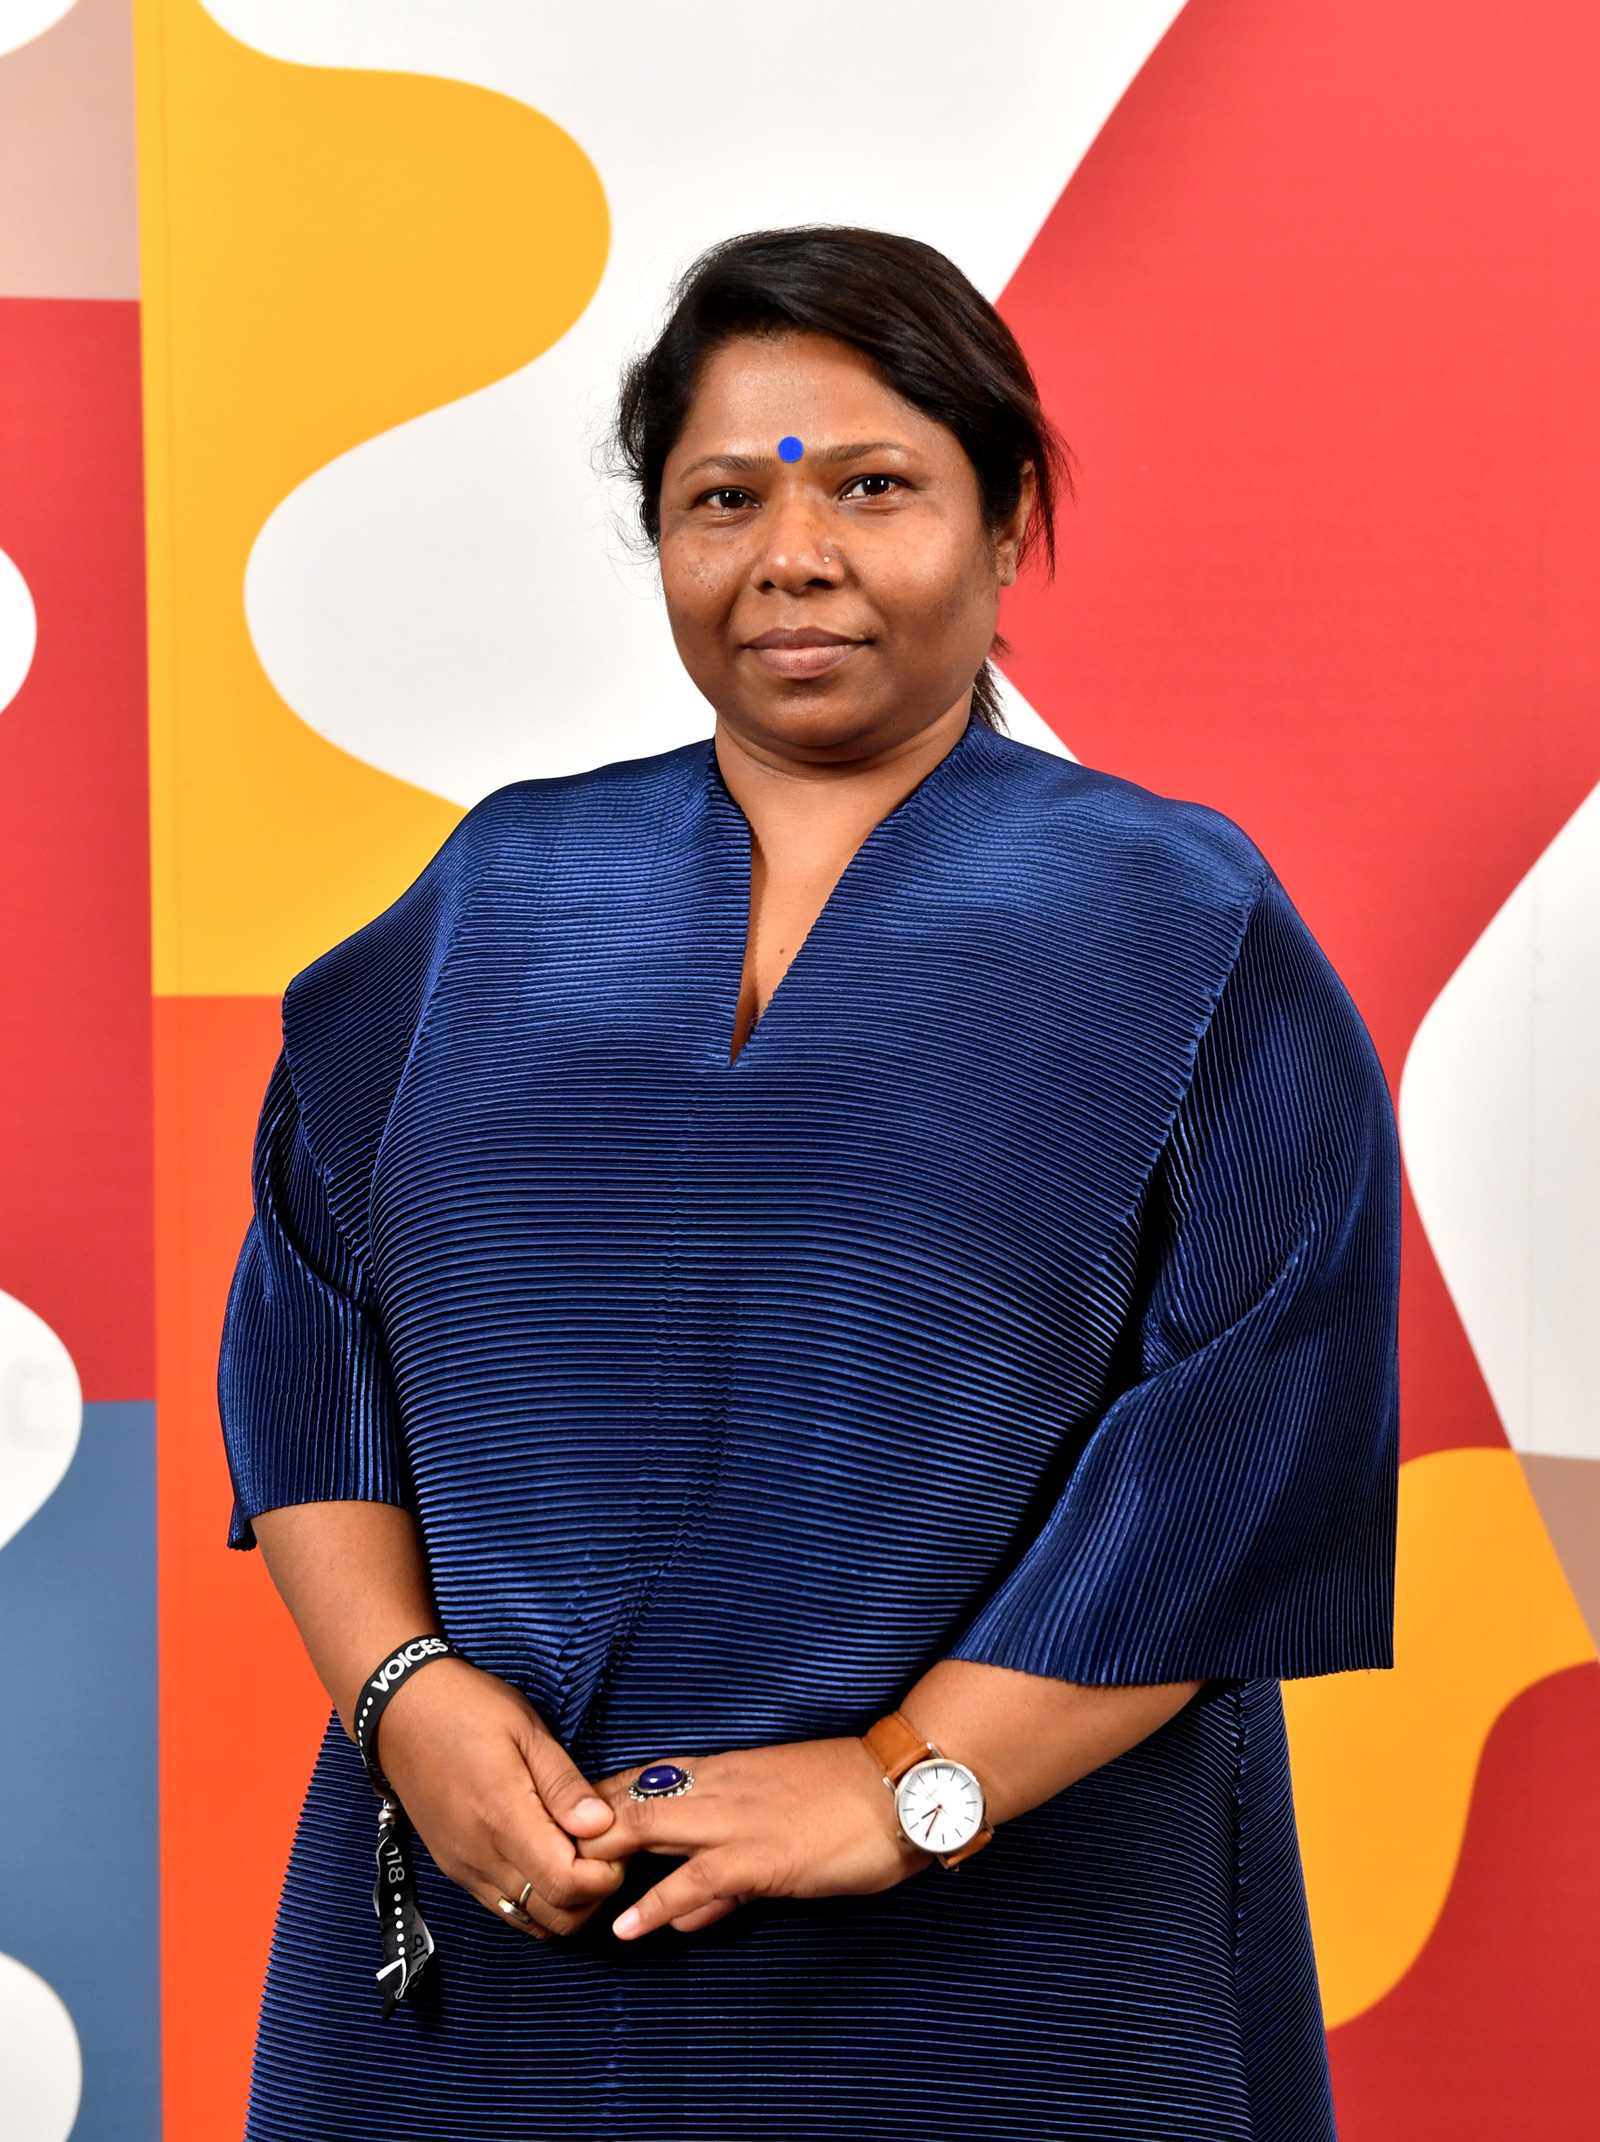 photo of Kalpona Akter, a Bangladeshi activist and cofounder, standing in front of a colorful mural, wearing a navy sheath dress with her hands folded in front of her.